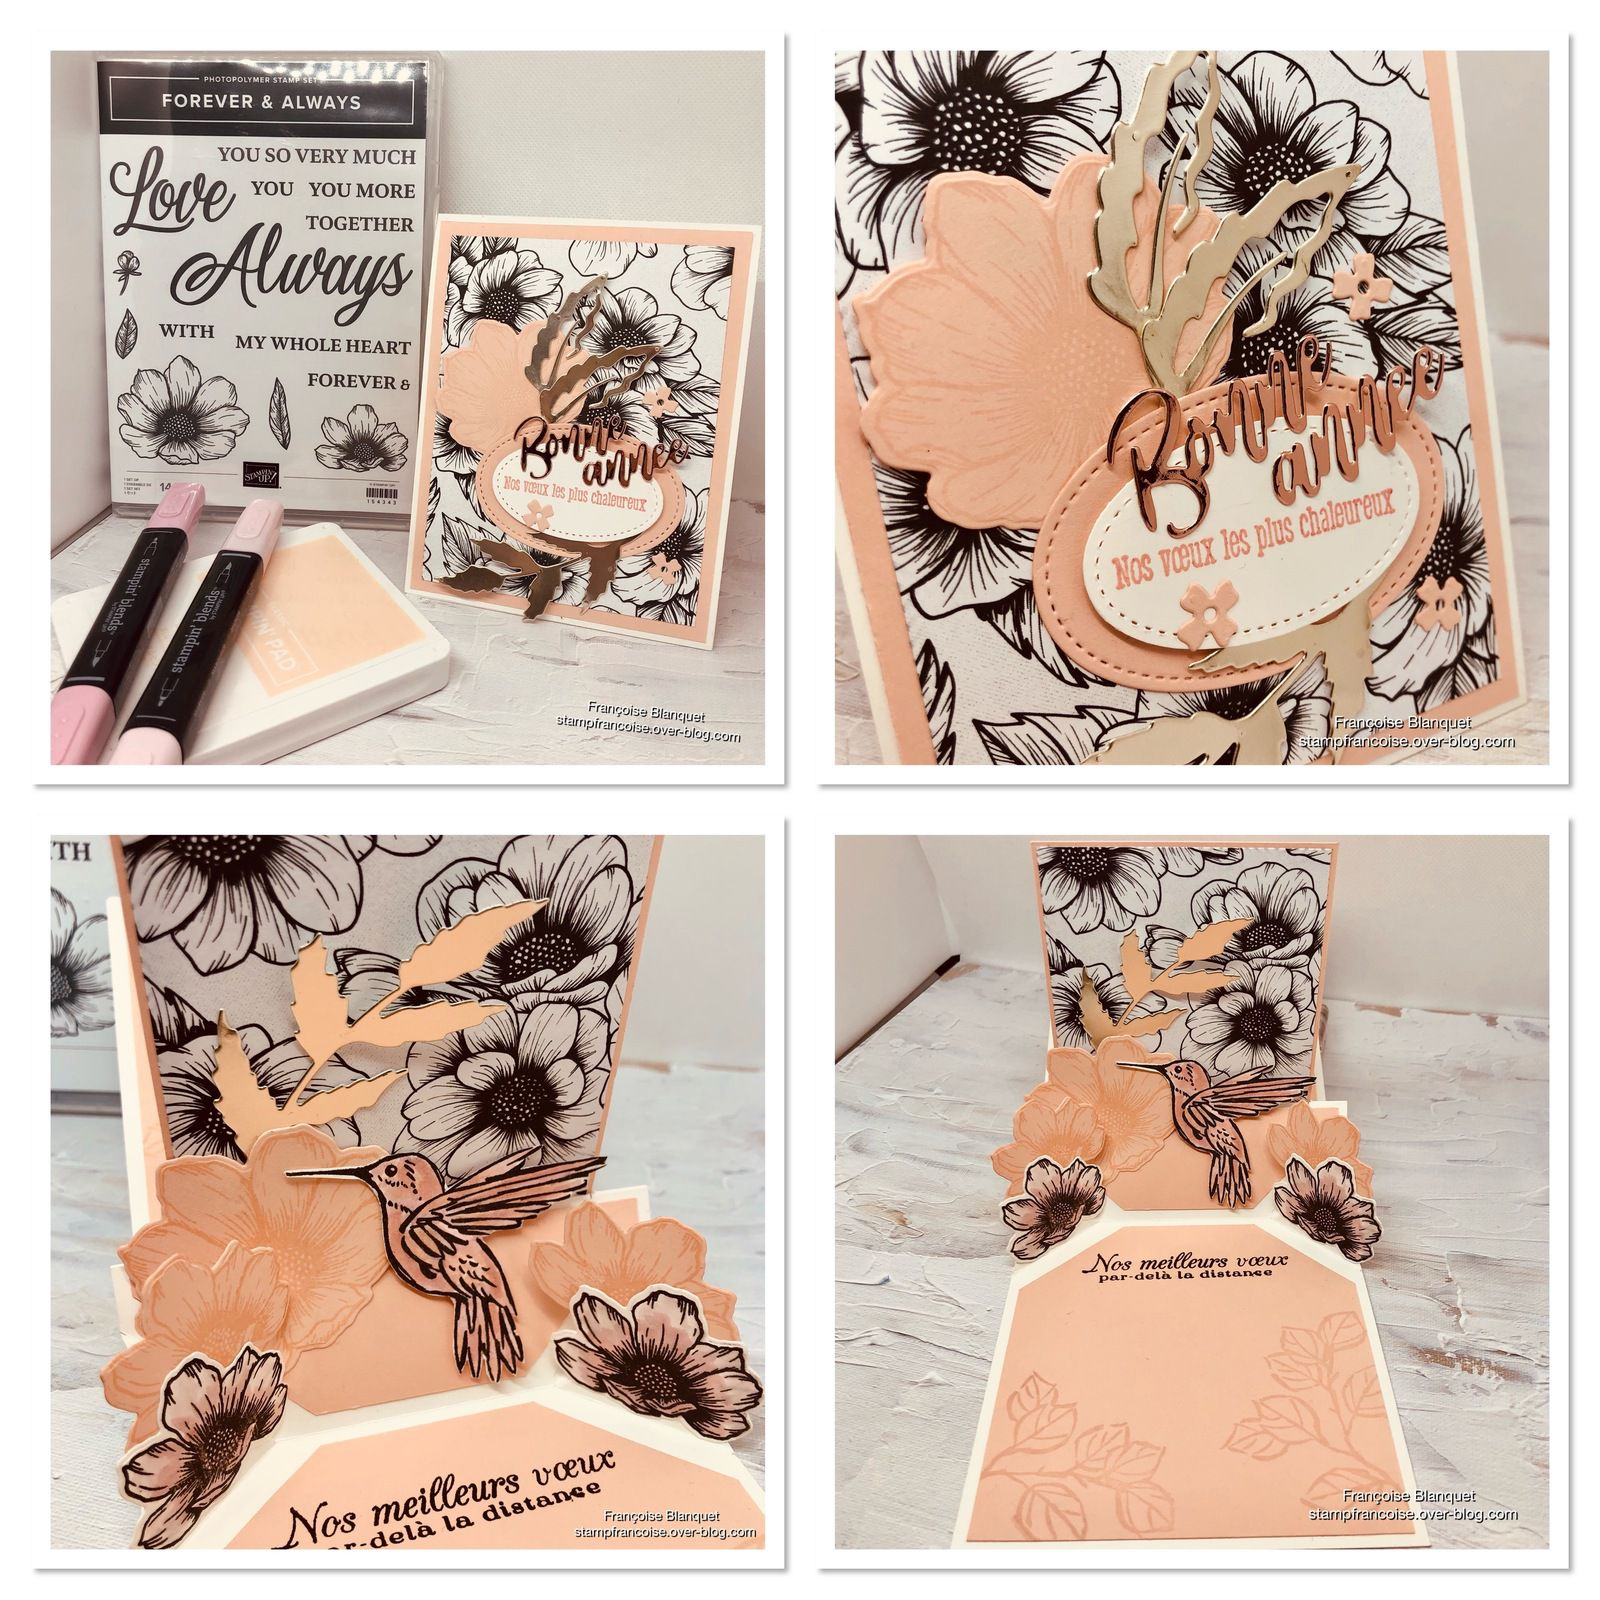 Stampin'Up! , atelier , gratuit , démonstration , porte ouverte , brocante , liquidation stampin'up